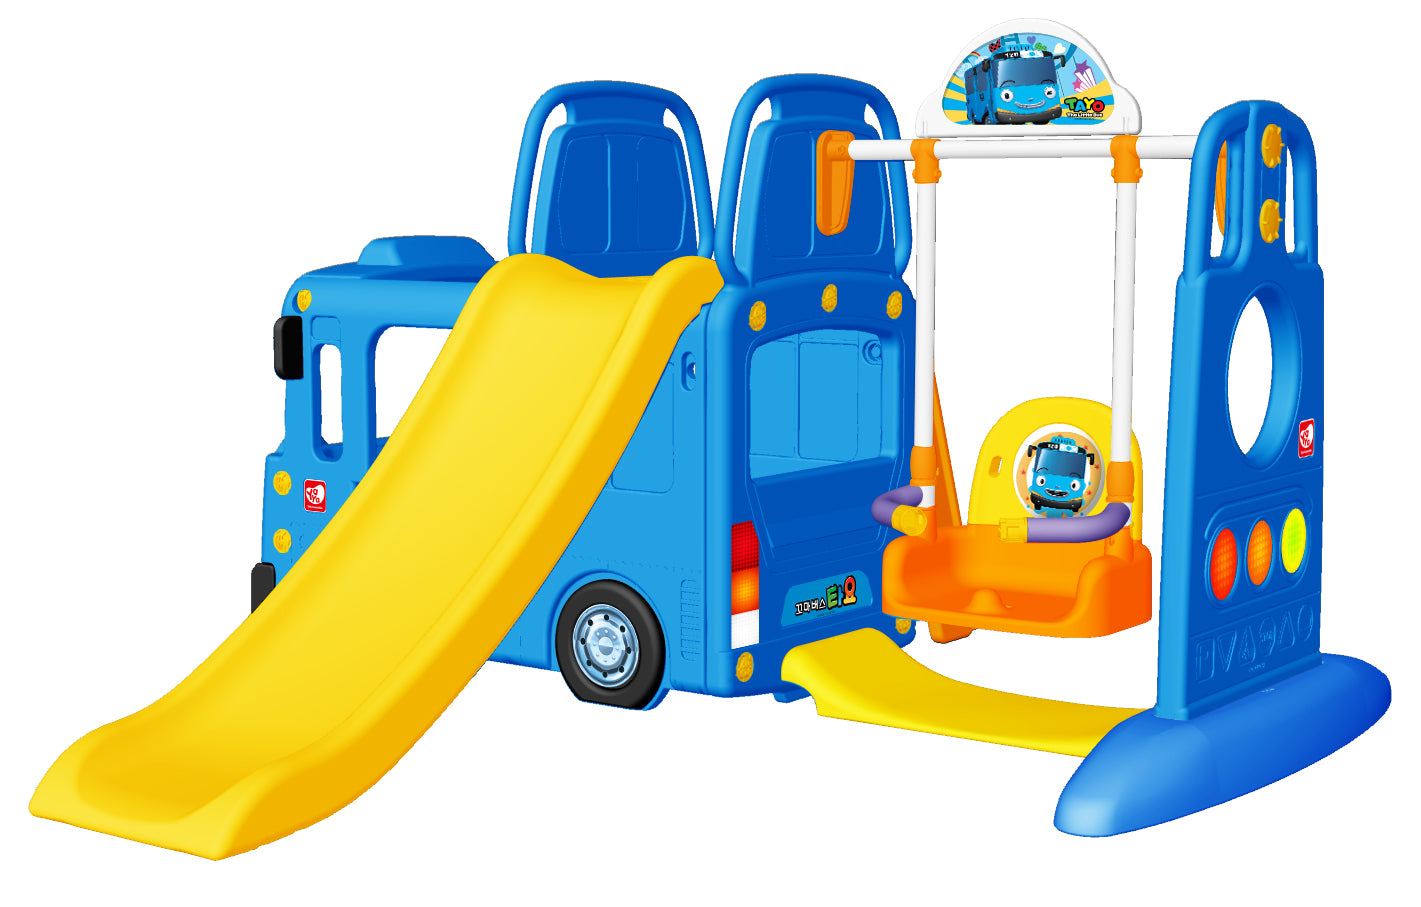 RICCO 3-in-1 Indoor Outdoor Bus Climb and Slide Kids Toddler ...